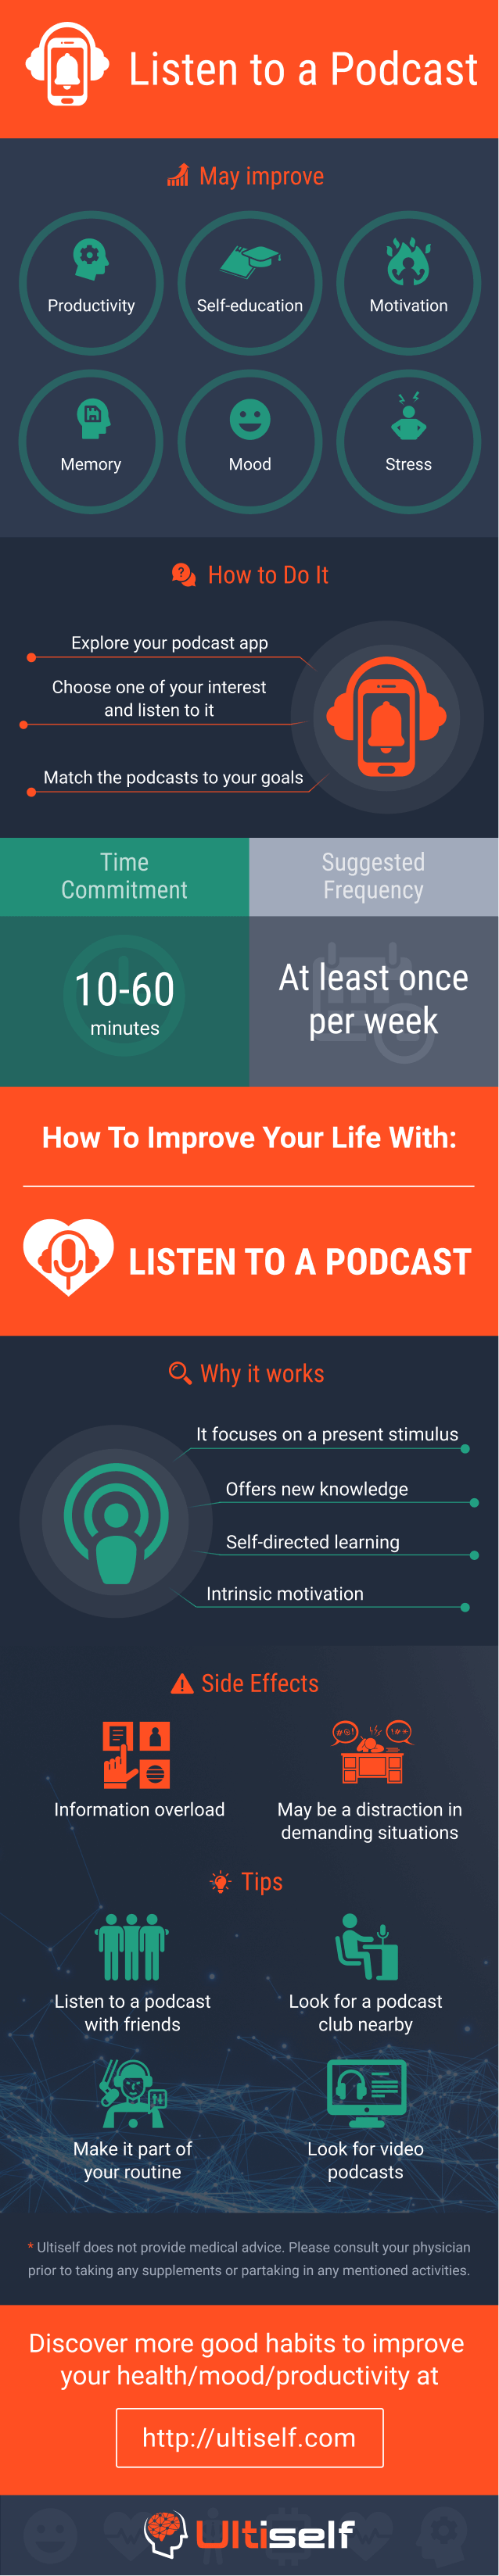 Listen to a Podcast infographic